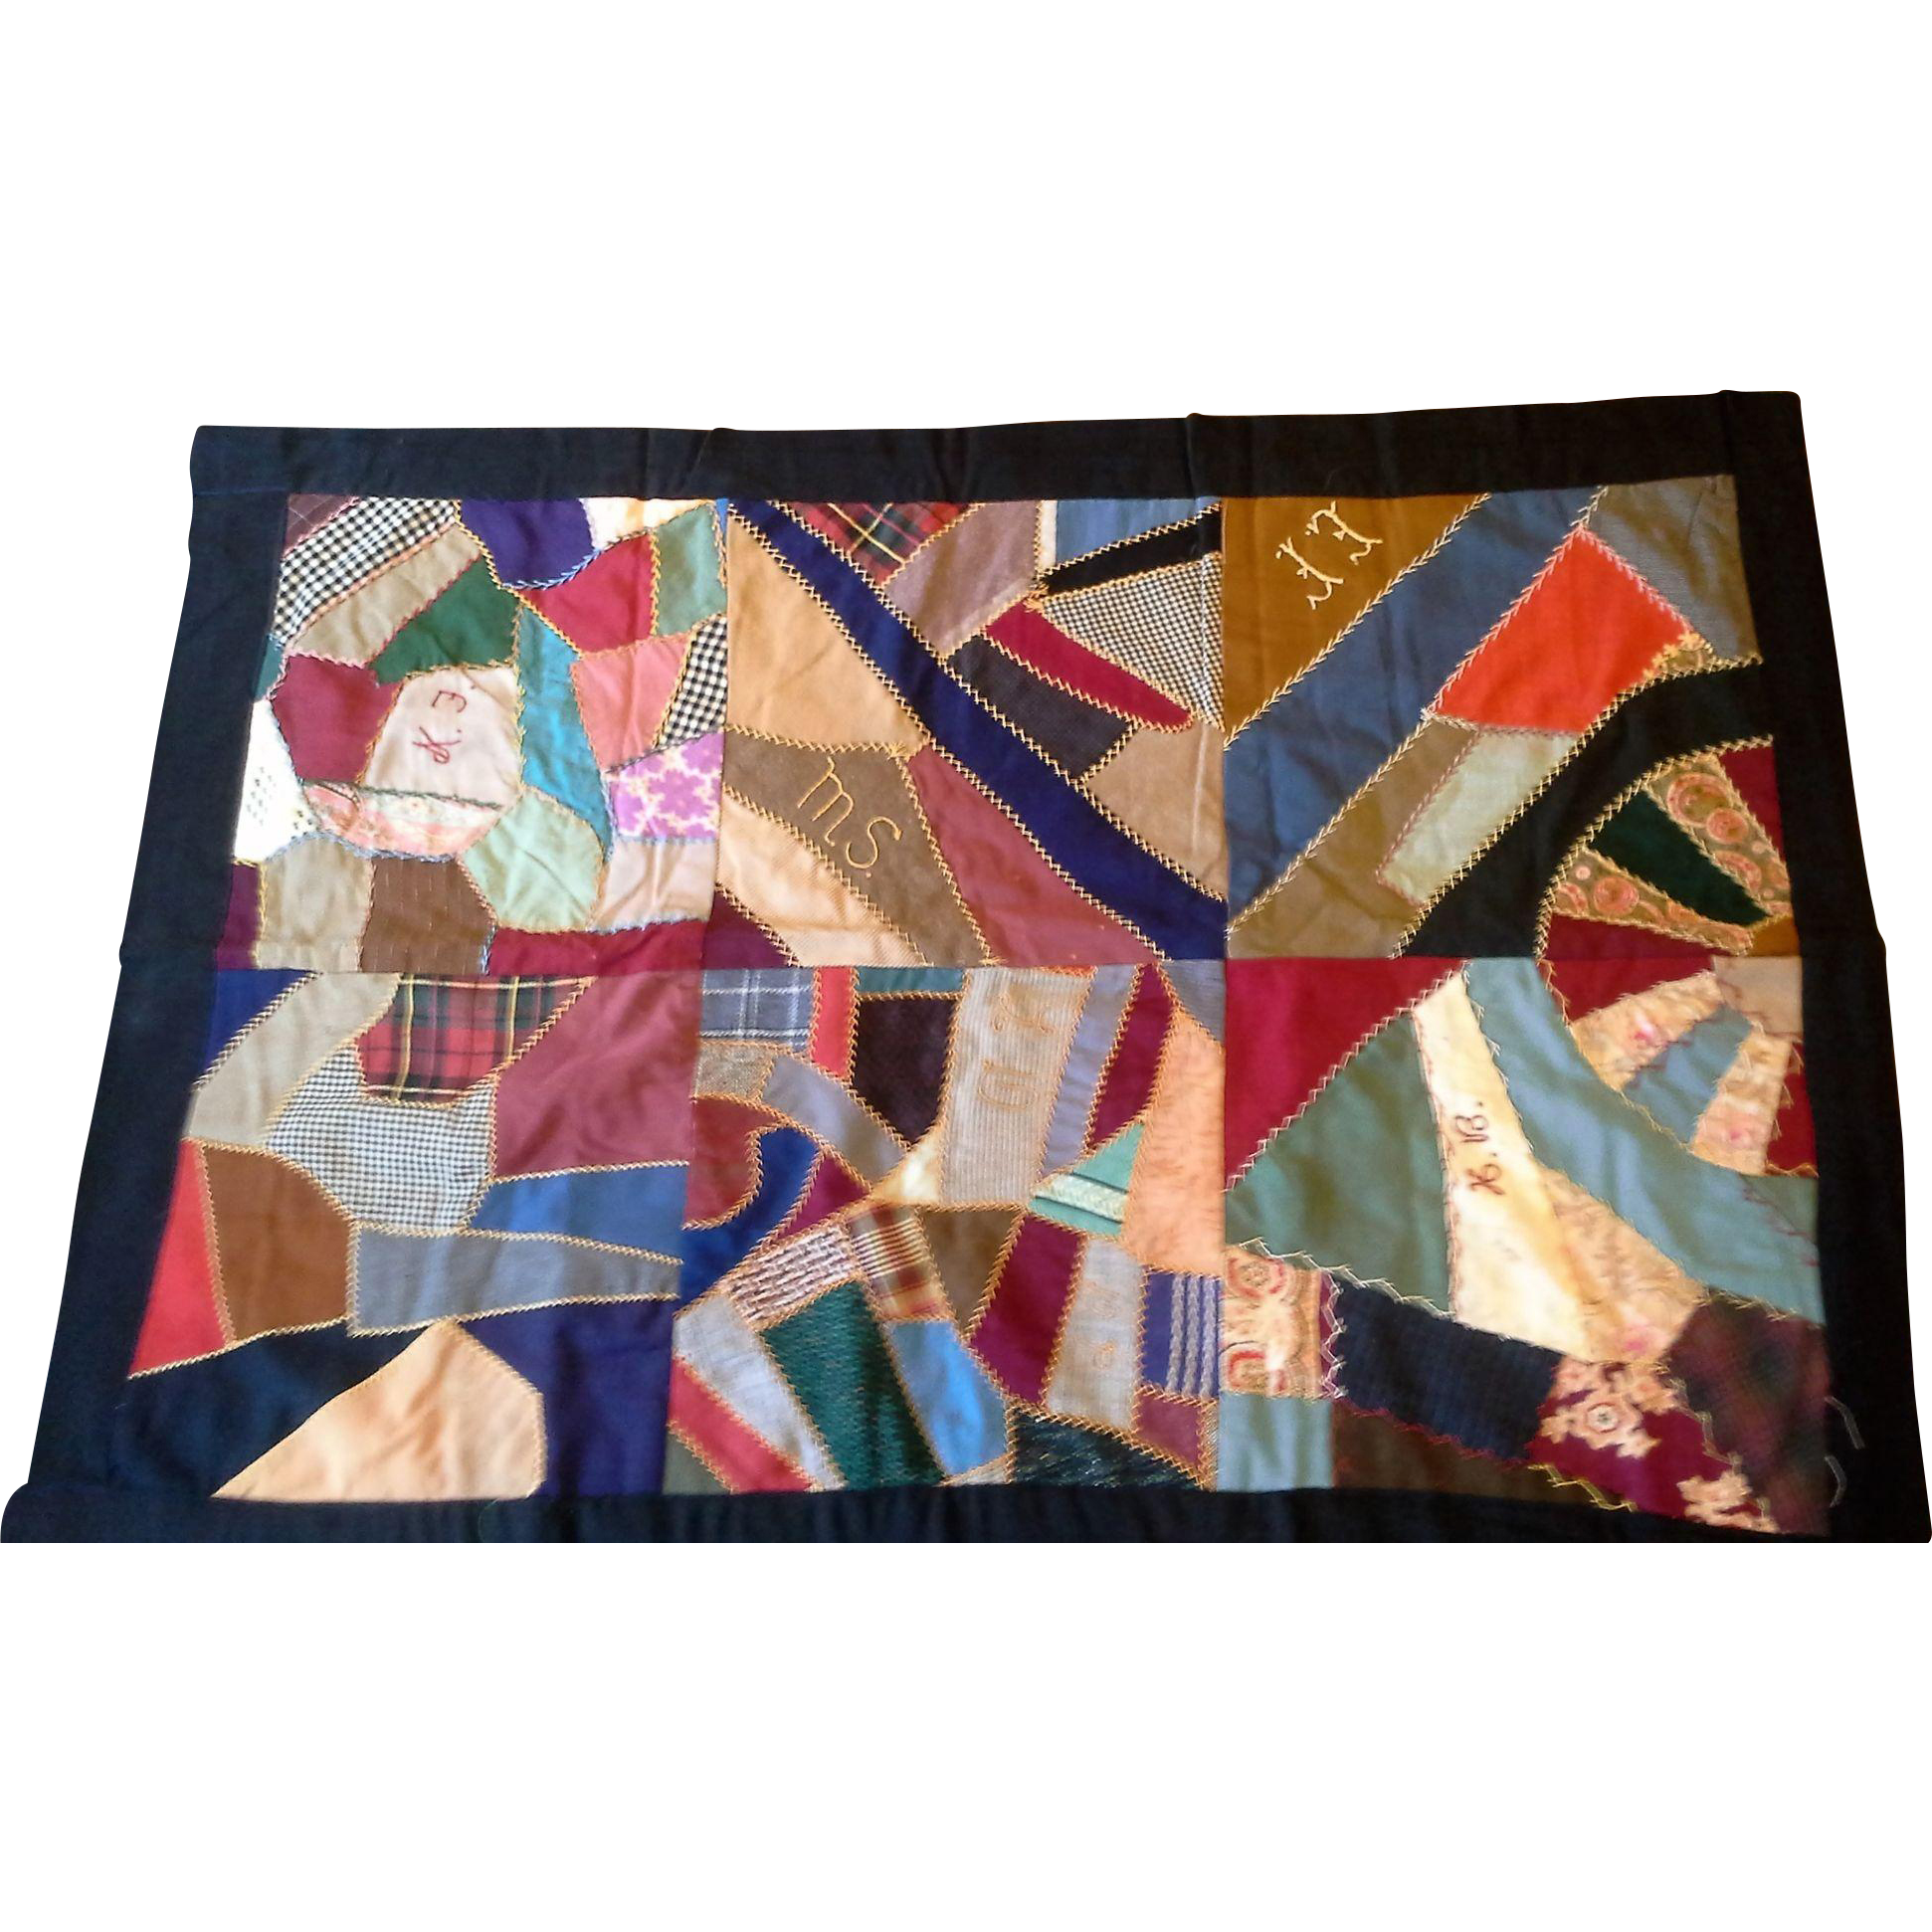 Victorian 19th Century Crazy Quilt Friendship Lap Quilt Feather Stitching Embroidered Initials 31 x 45 IN